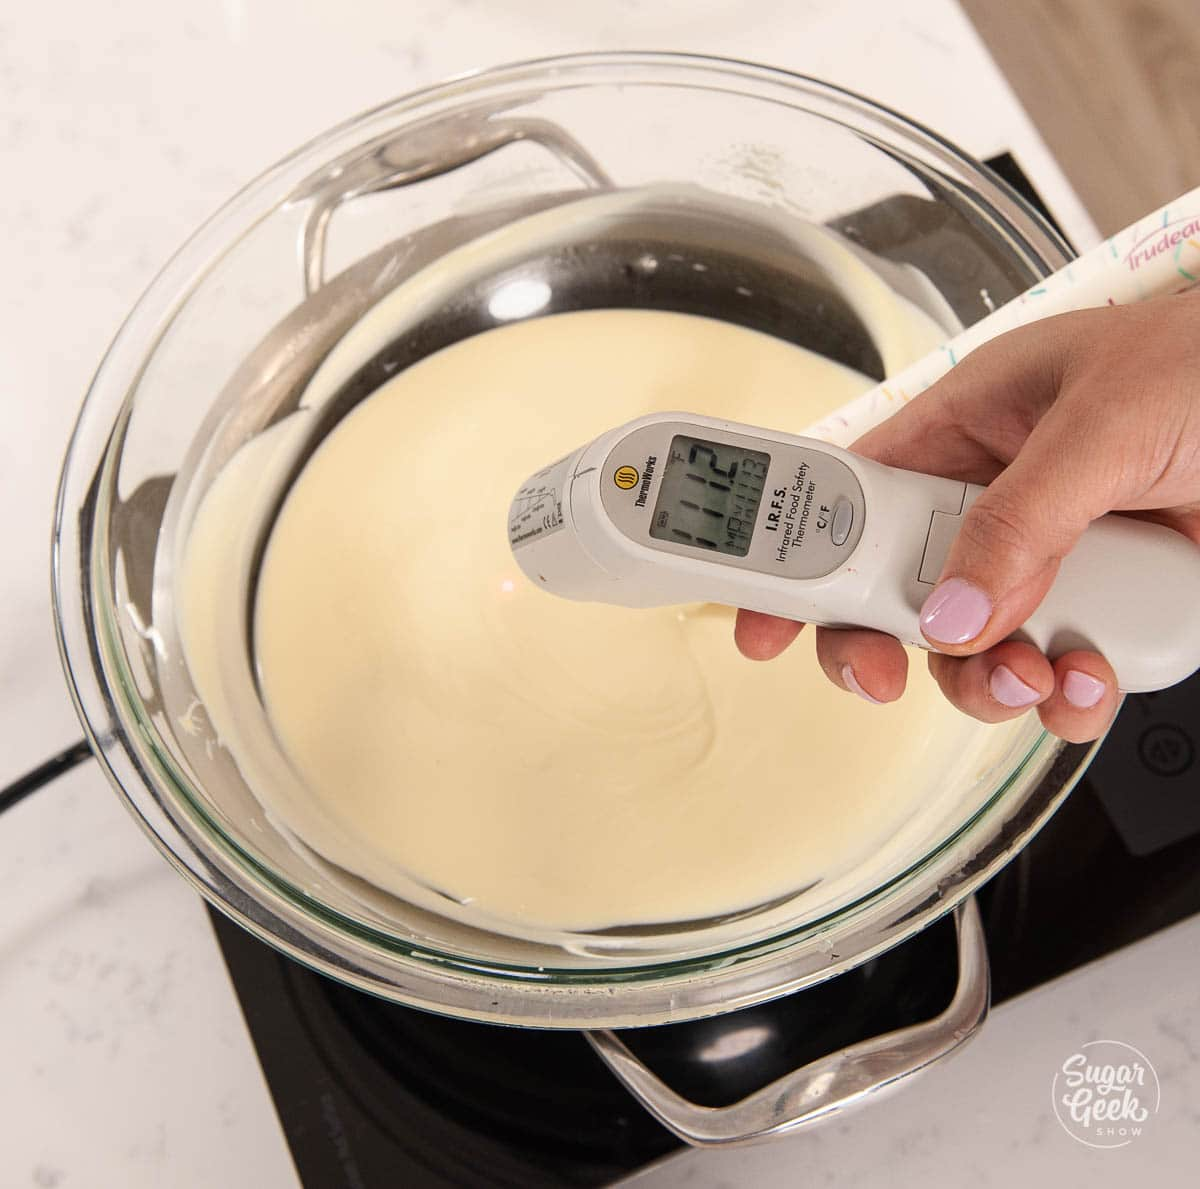 infrared thermometer held in hand over melted chocolate